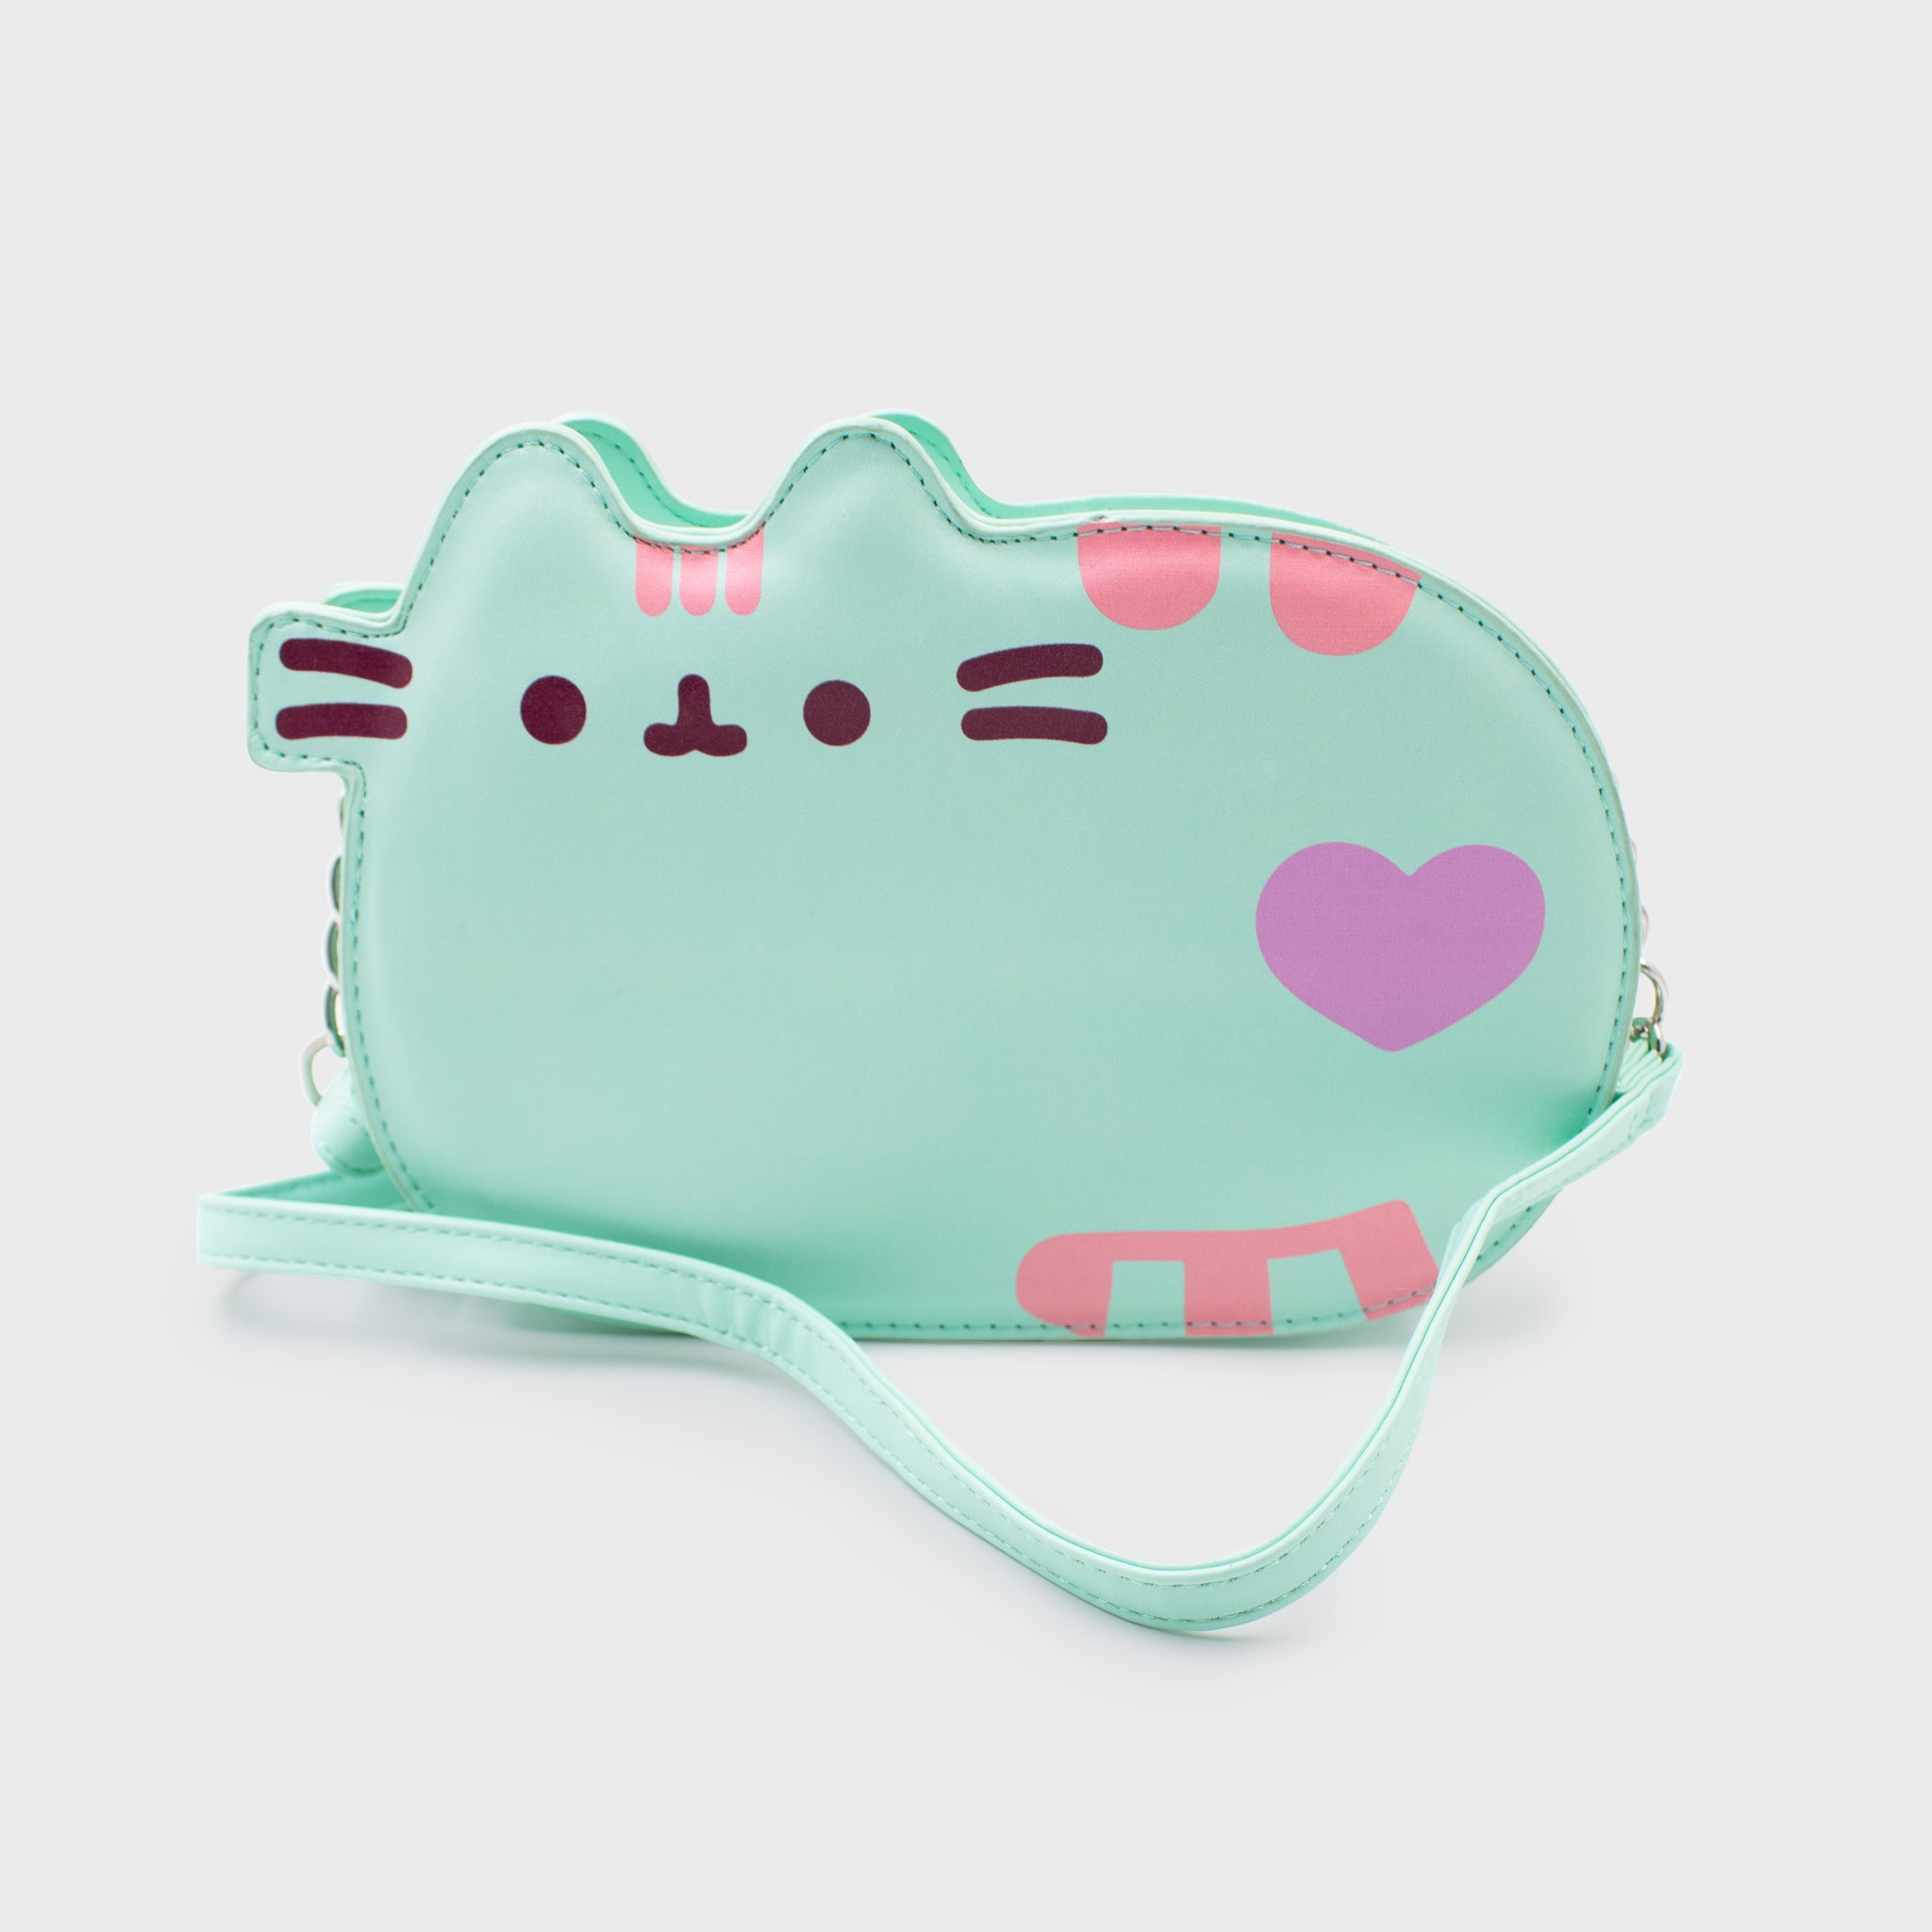 pusheen mint bag purse crossbody pocketbook cute cat culturefly